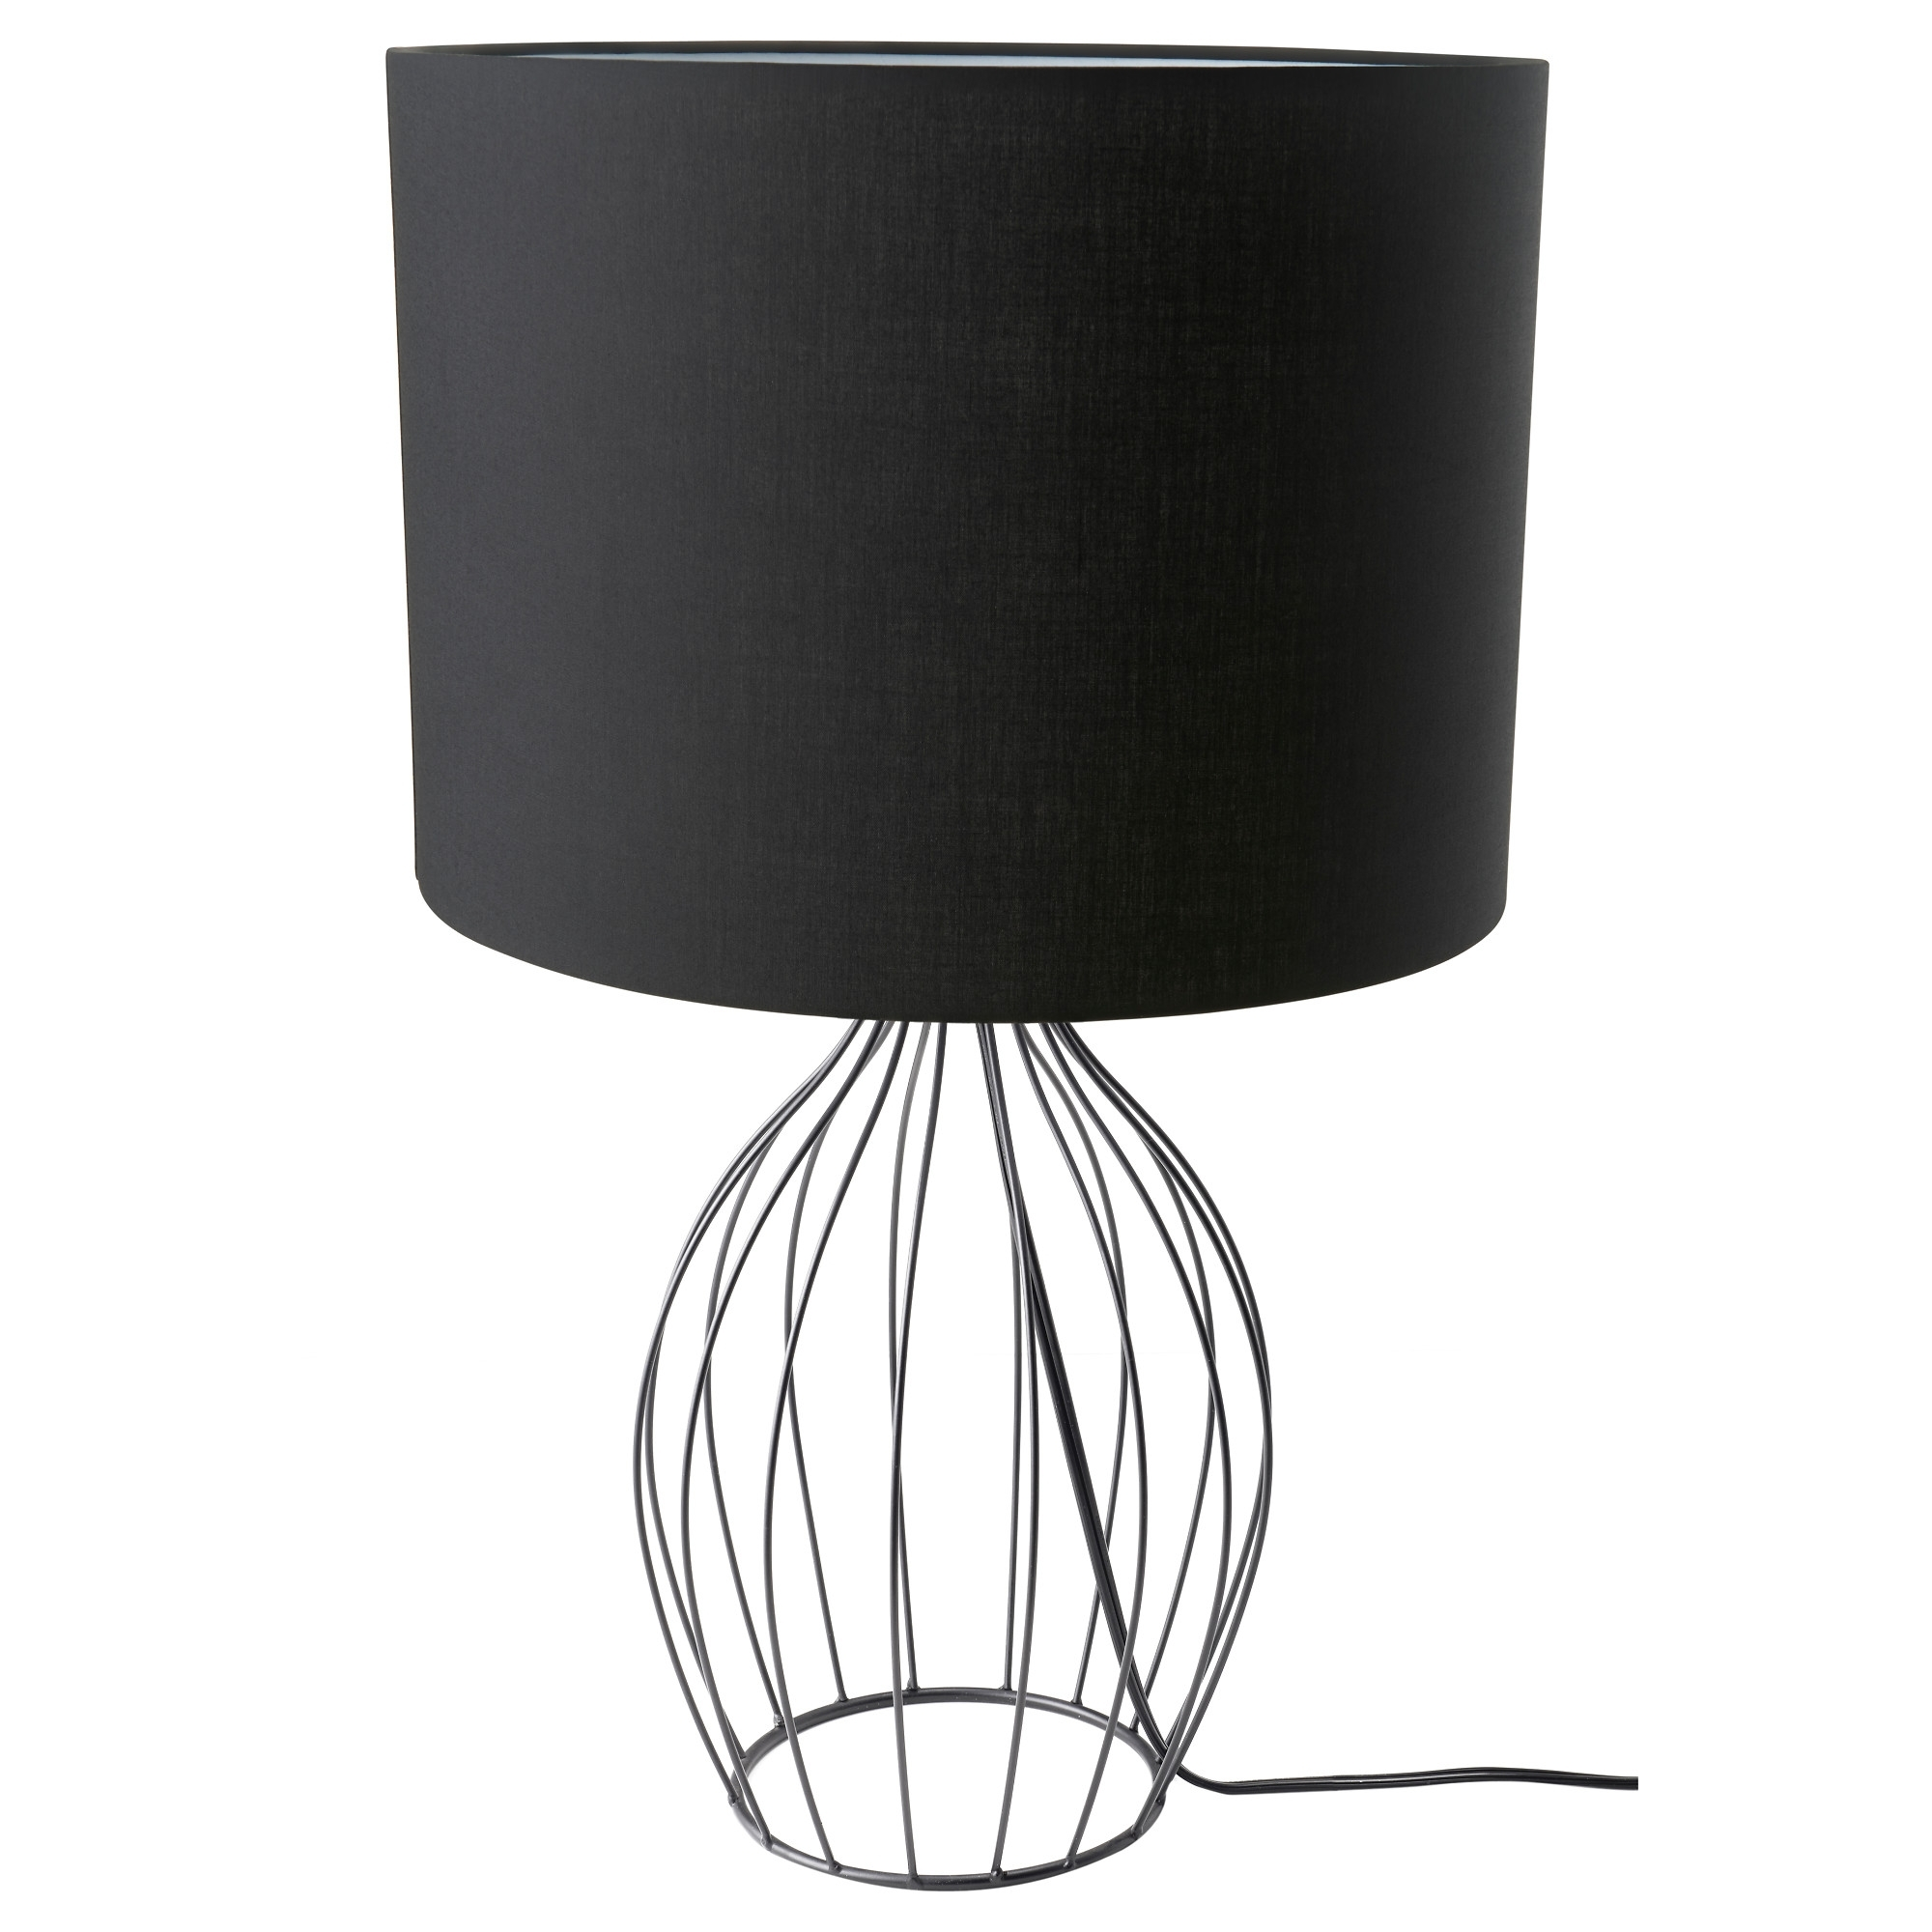 Inspiration about Top 68 Supreme Nightstand Lamps Unique Table Grey Bedside Black Regarding Living Room Touch Table Lamps (#11 of 15)